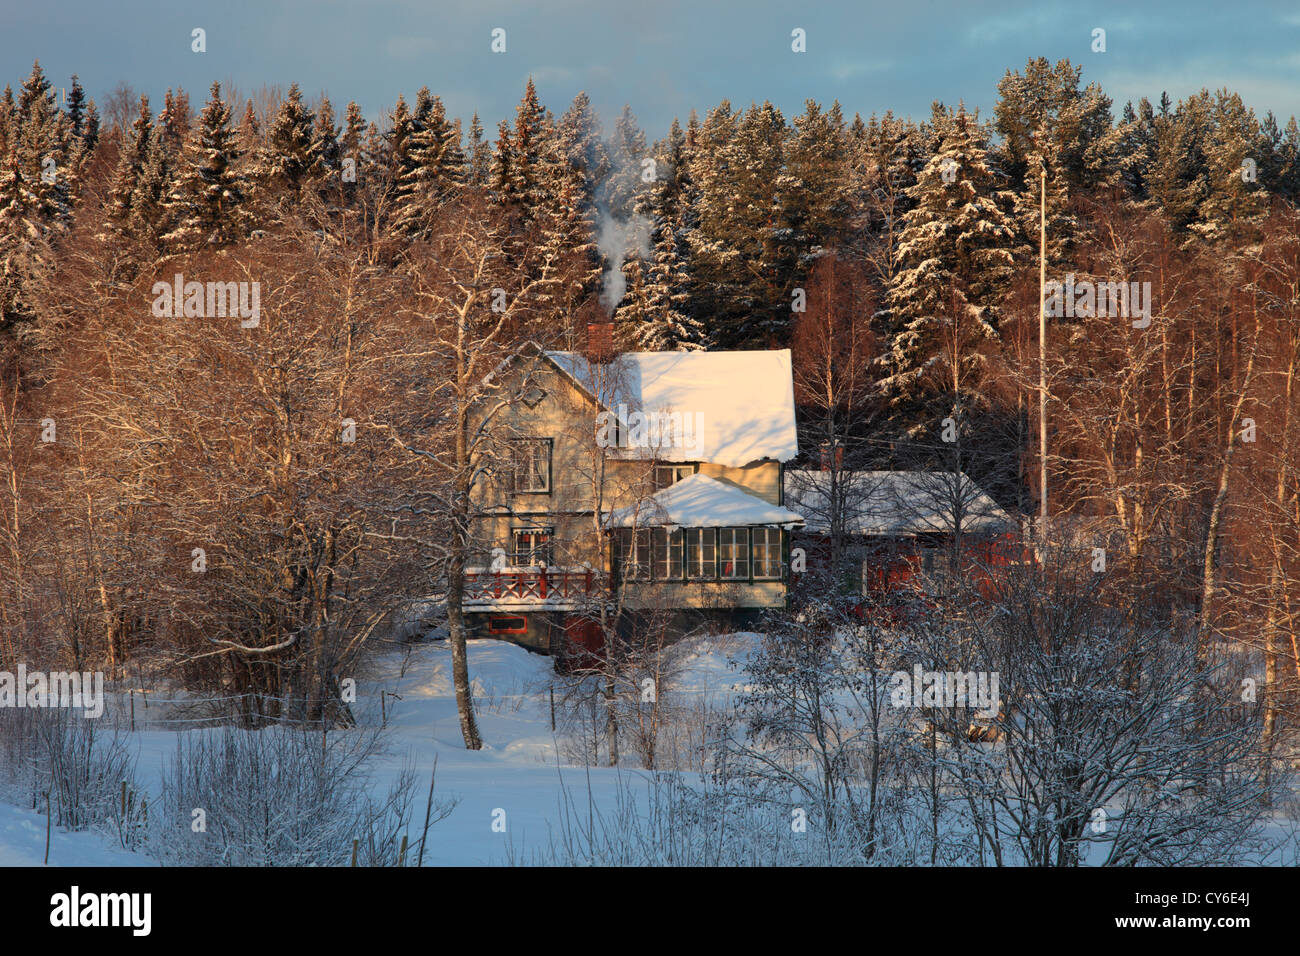 Smoke is curling from the chimney of a yellow wooden house in winter. - Stock Image